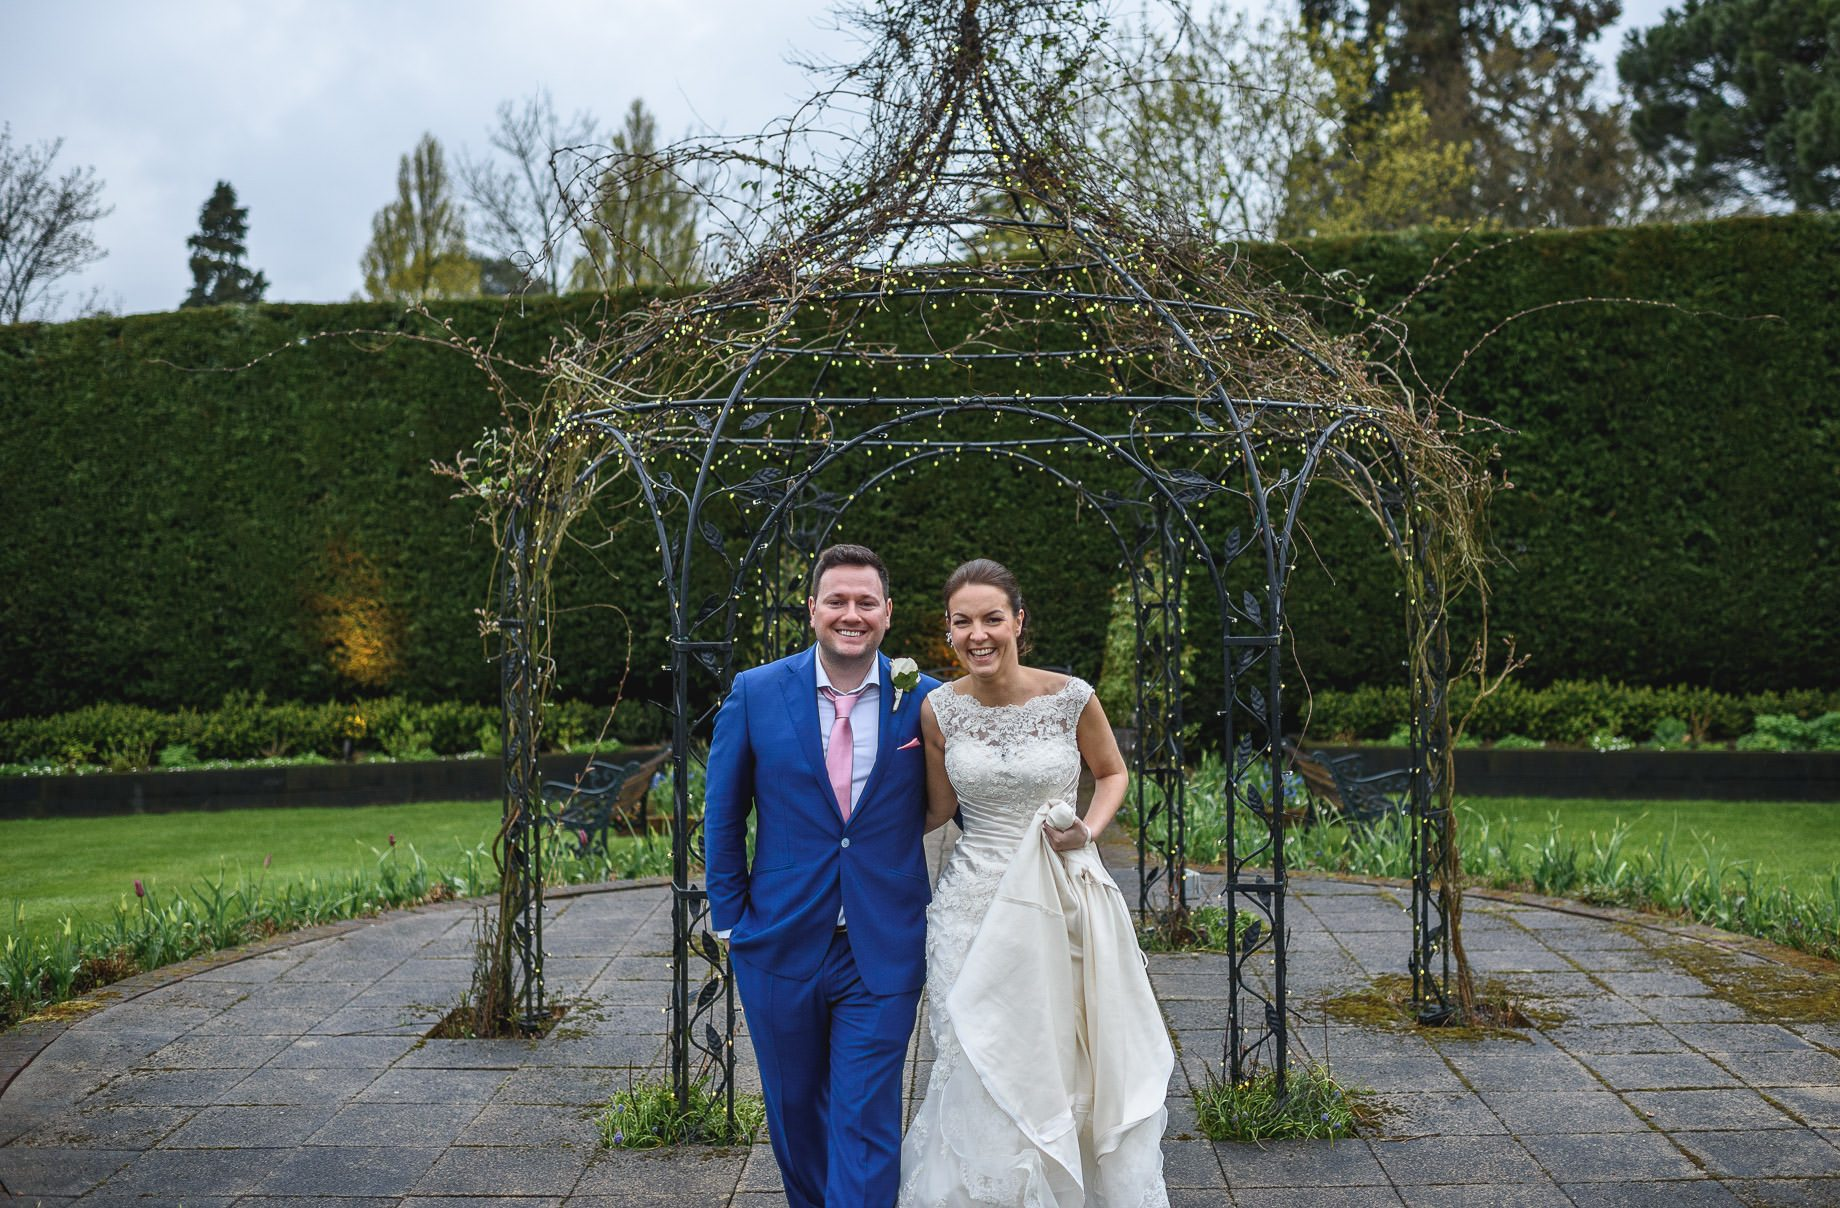 Best wedding photography by Guy Collier - Sheri and Chris (114 of 121)